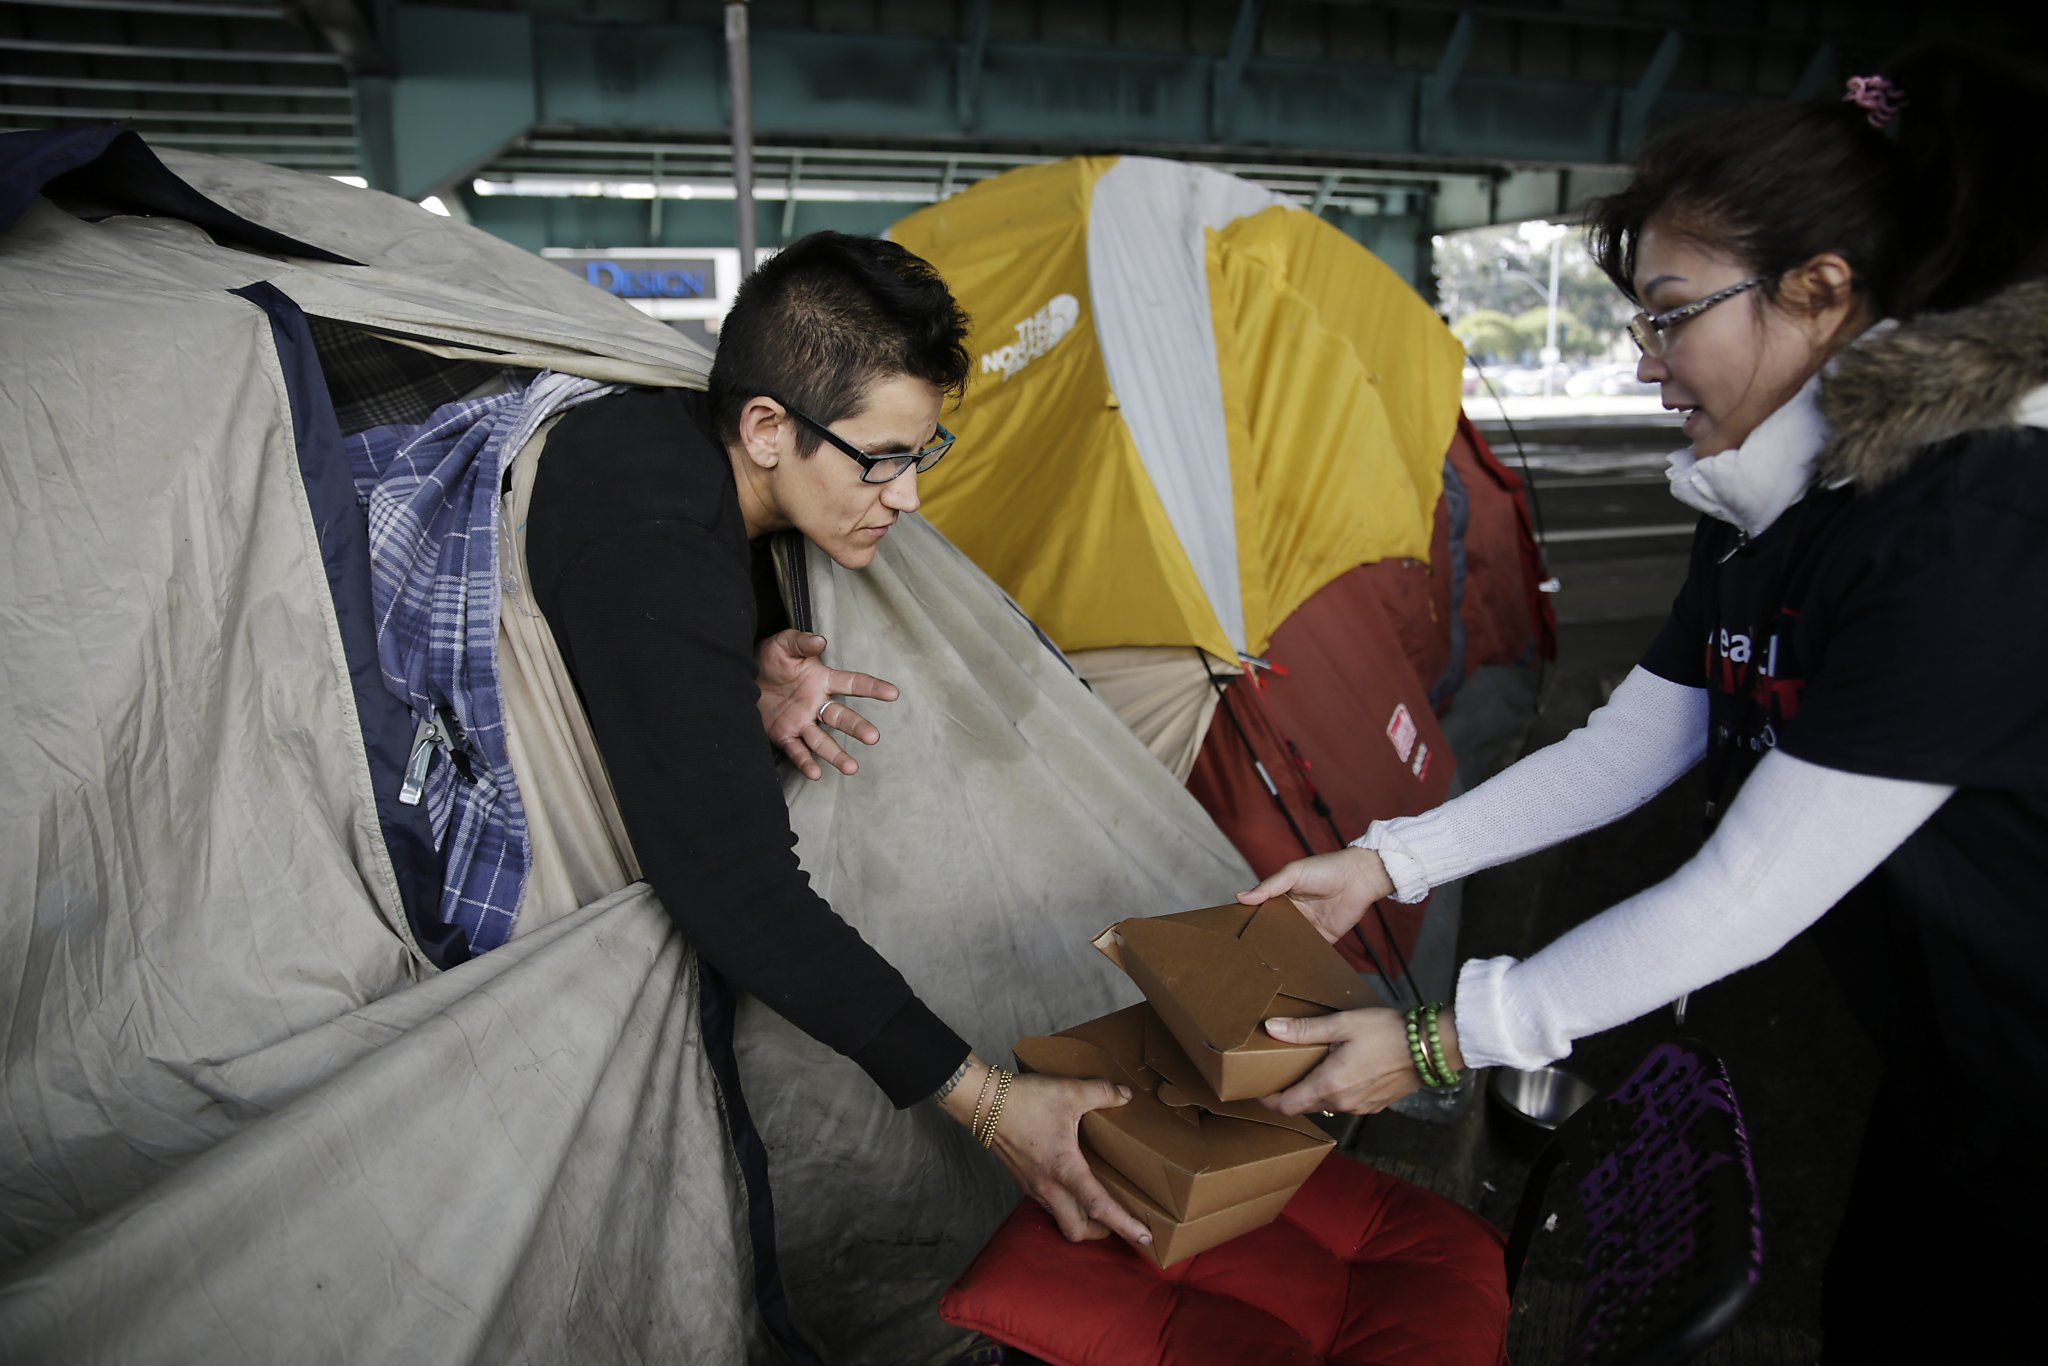 S.F. spends record $241 million on homeless, can't track results